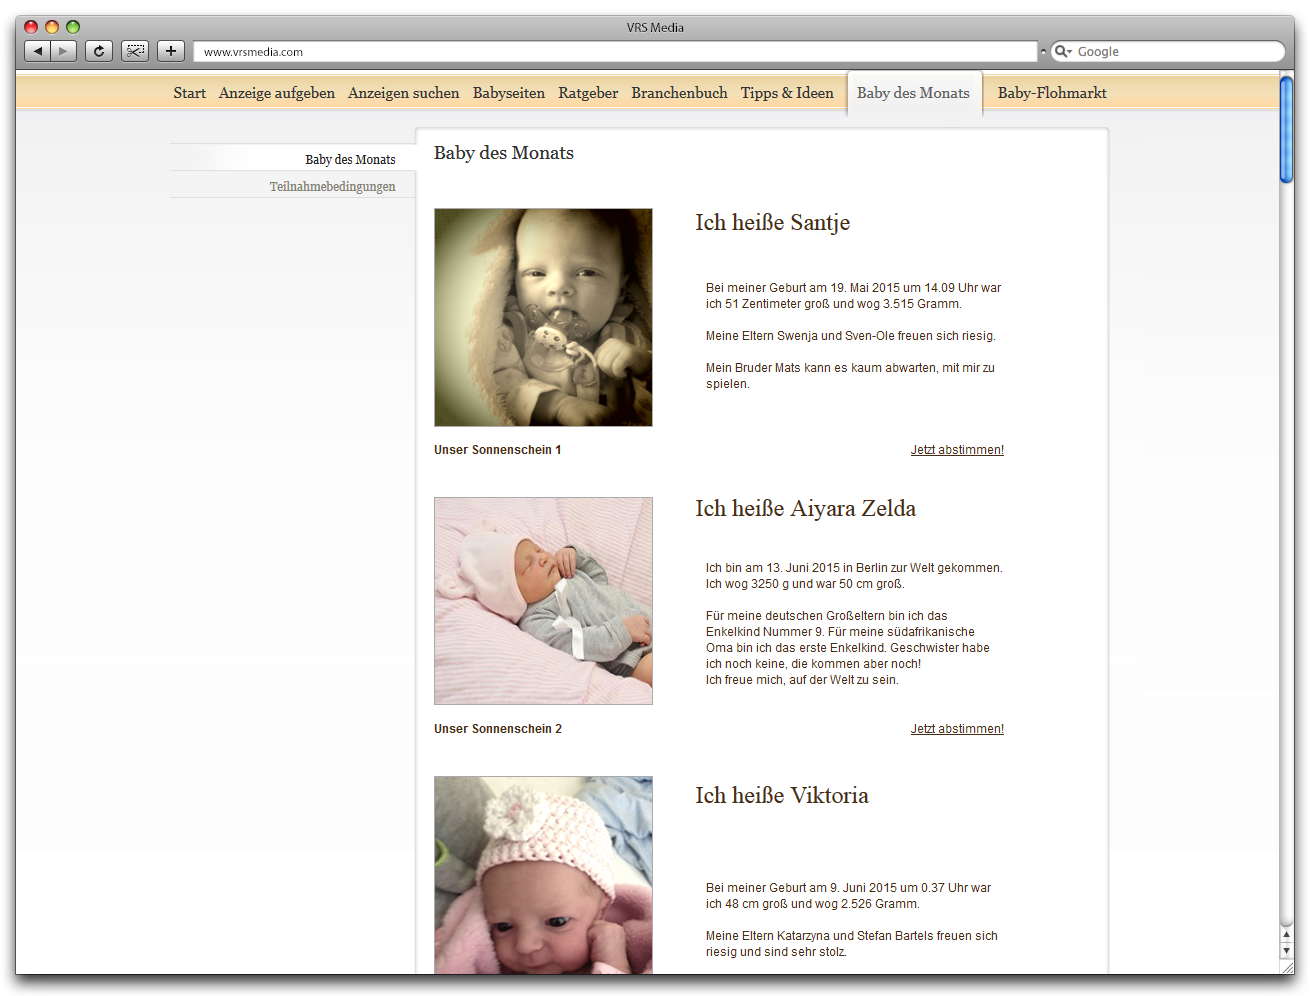 Screen VRS Media Babyportal Fotowettbewerb, vrs.FamilyMarkets